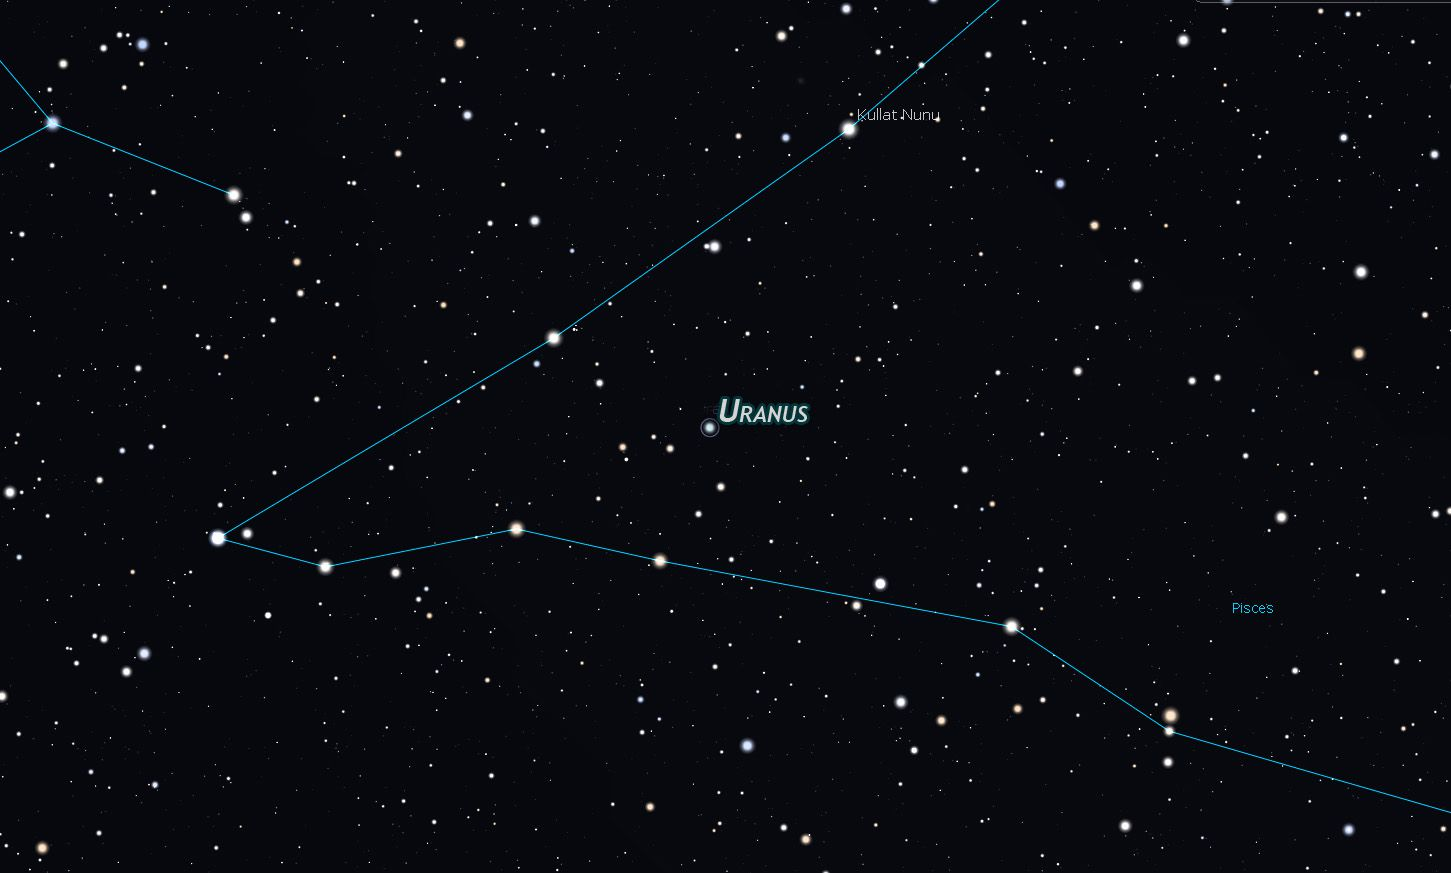 Finding Uranus and Neptune to view through a small telescope.